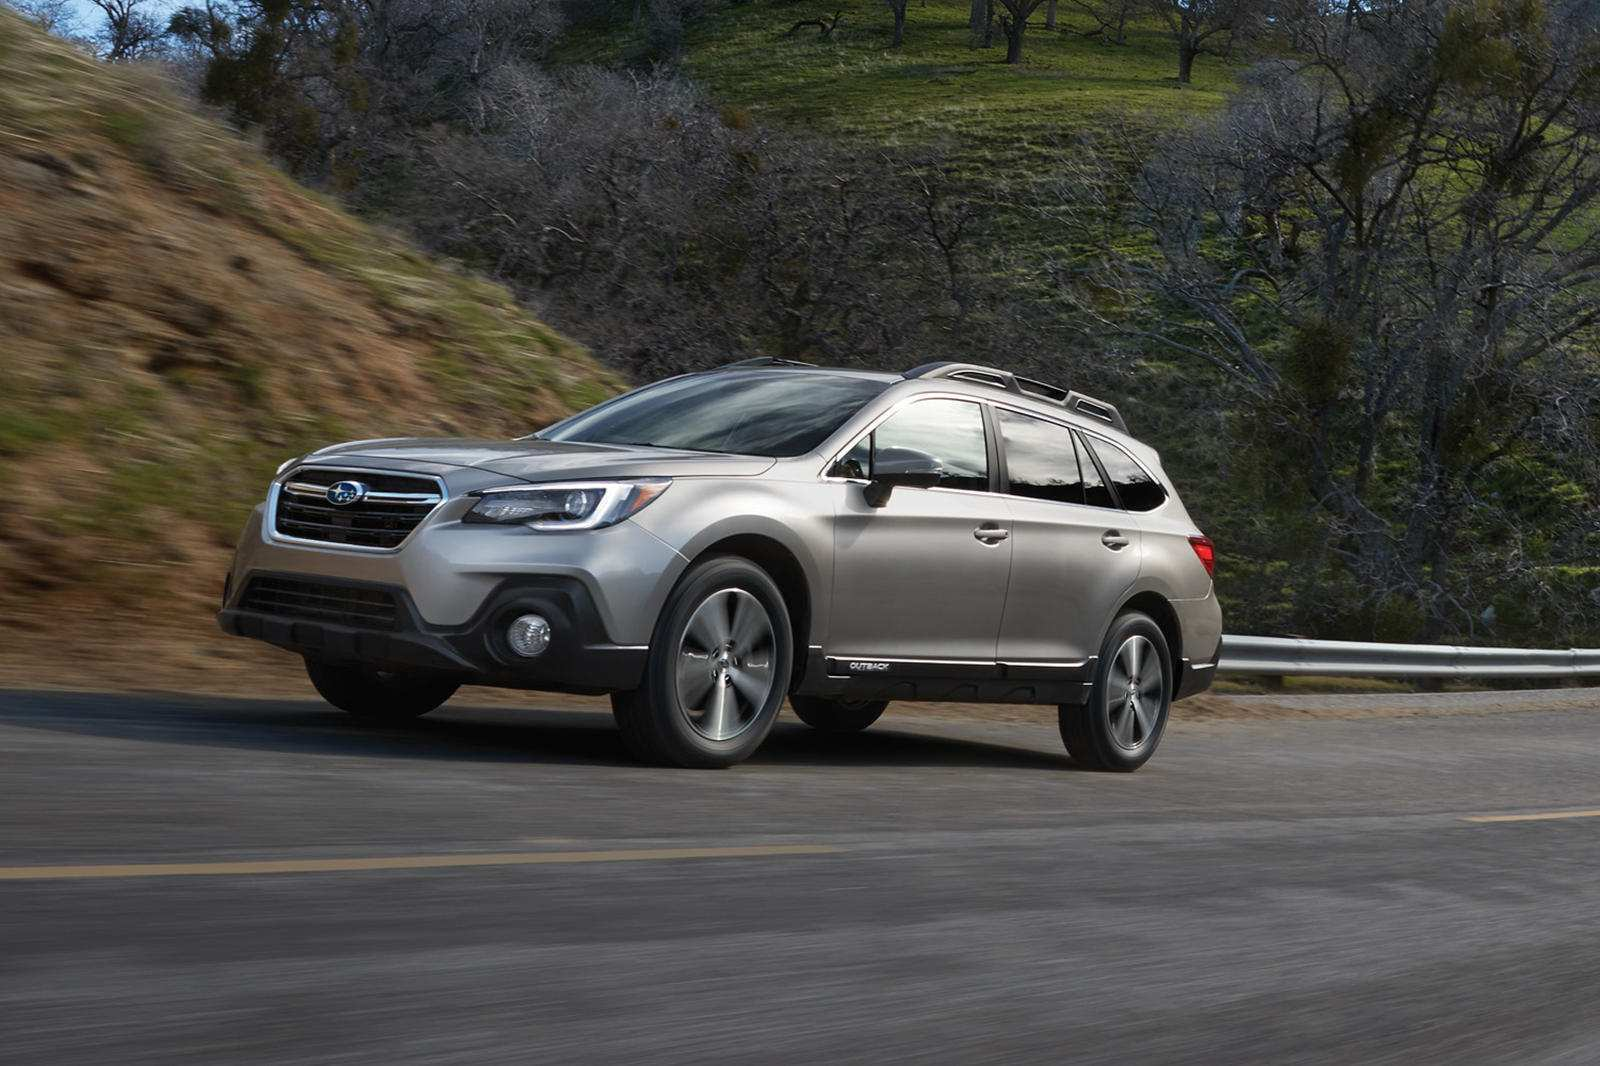 42 Best Review The Subaru Outback 2019 Review Rumor Images with The Subaru Outback 2019 Review Rumor